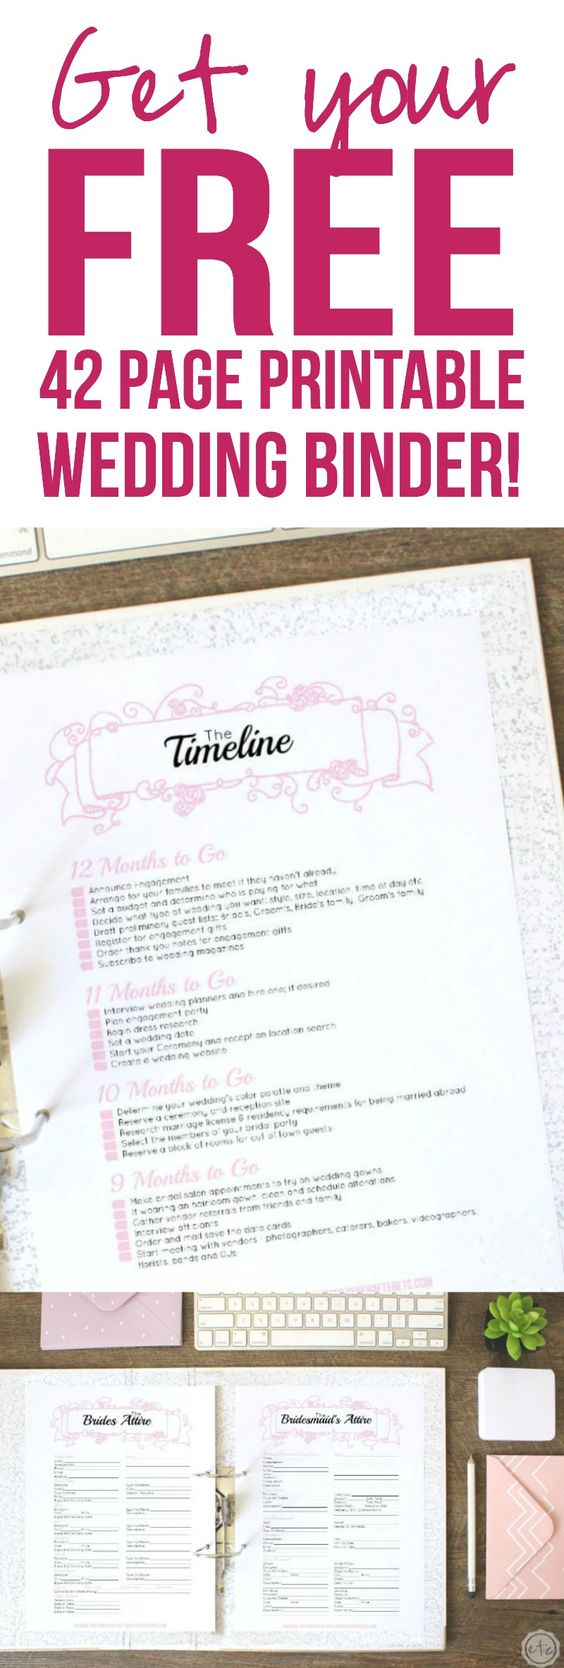 I am getting married soon and I totally need this! A free 42 page wedding binder? Yes please! I'm grabbing mine now! Click through to read more and grab your FREE printables! @HappilyEverAEtc